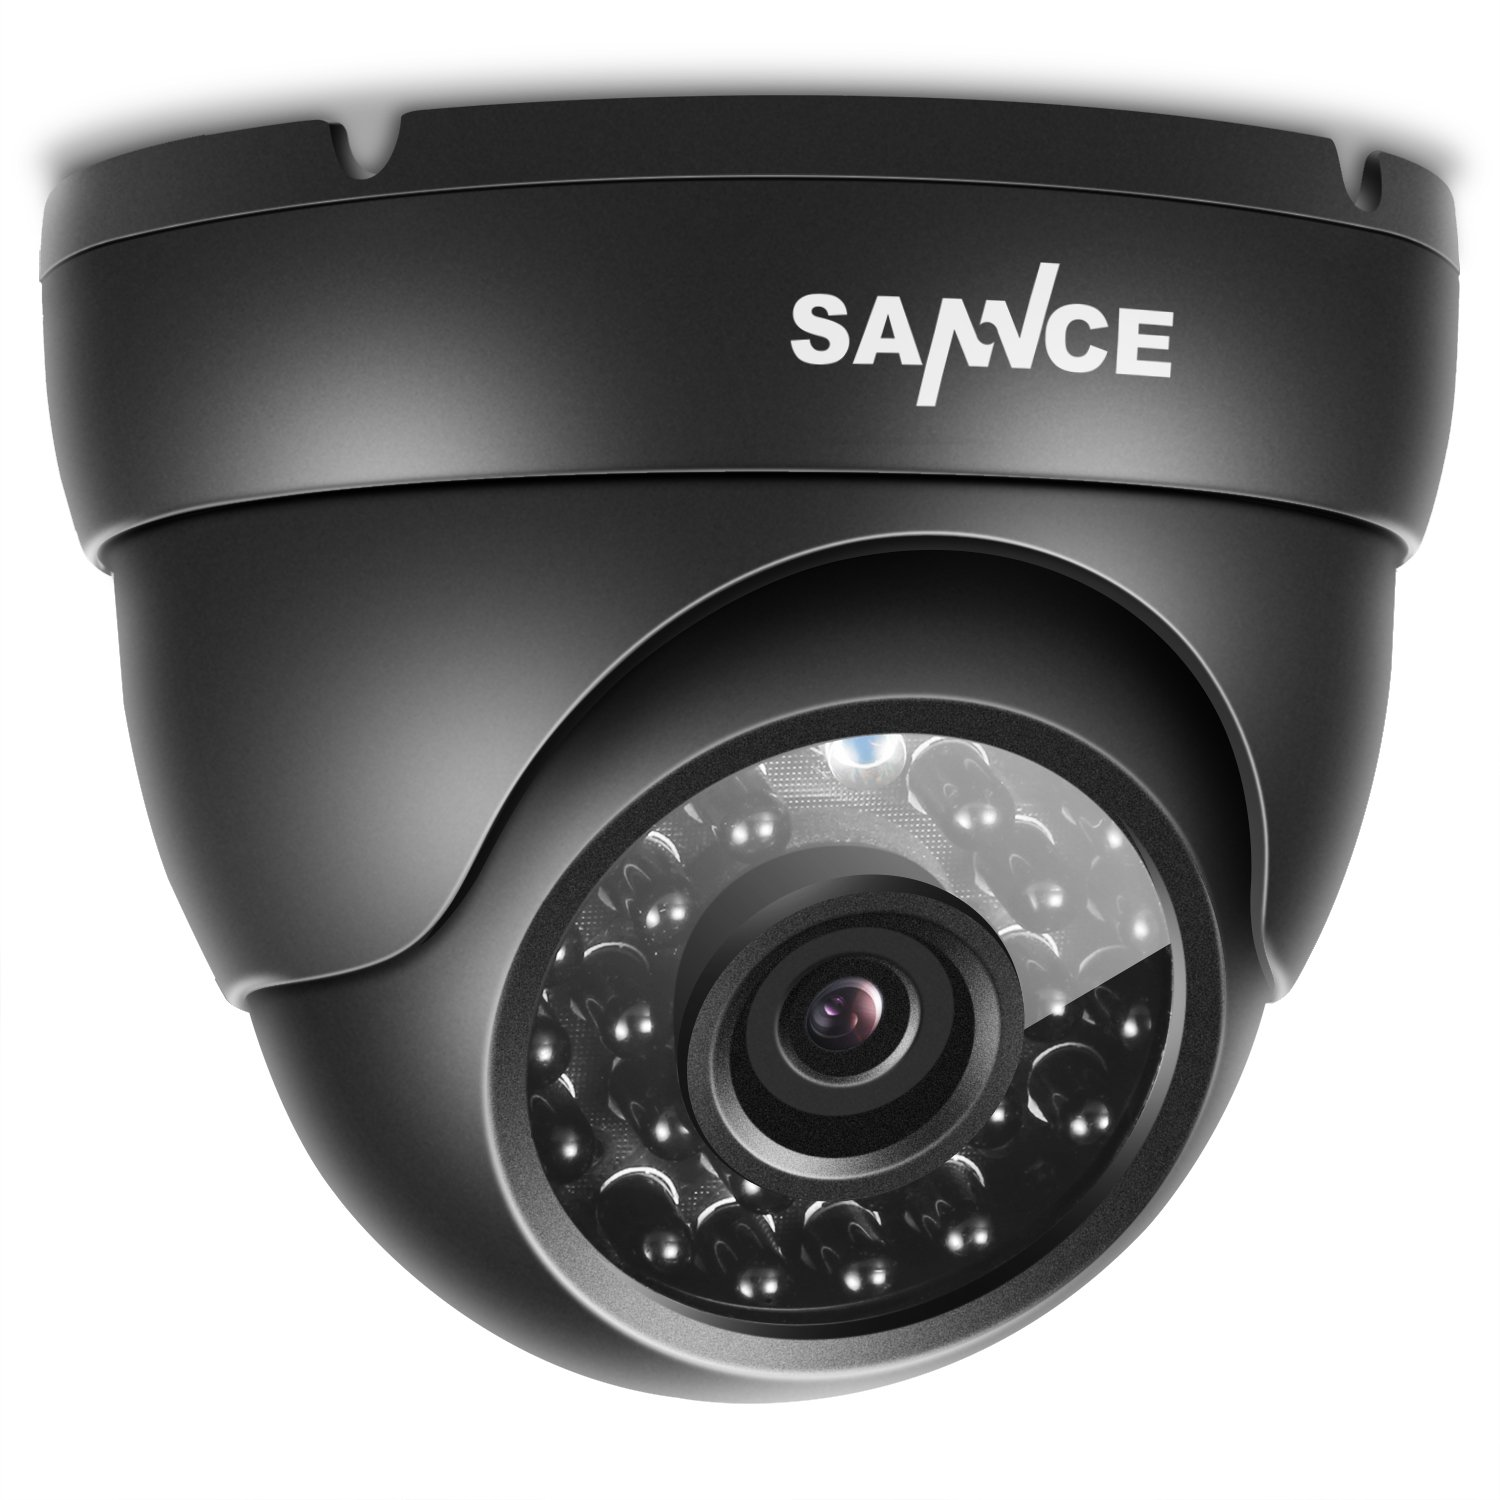 SANNCE 960H 800TVL CCTV Day Night Vision Surveillance Camera Outdoor/Indoor Security and Surveillance Weatherproof Camera with with IR-Cut Weatherproof Body by SANNCE